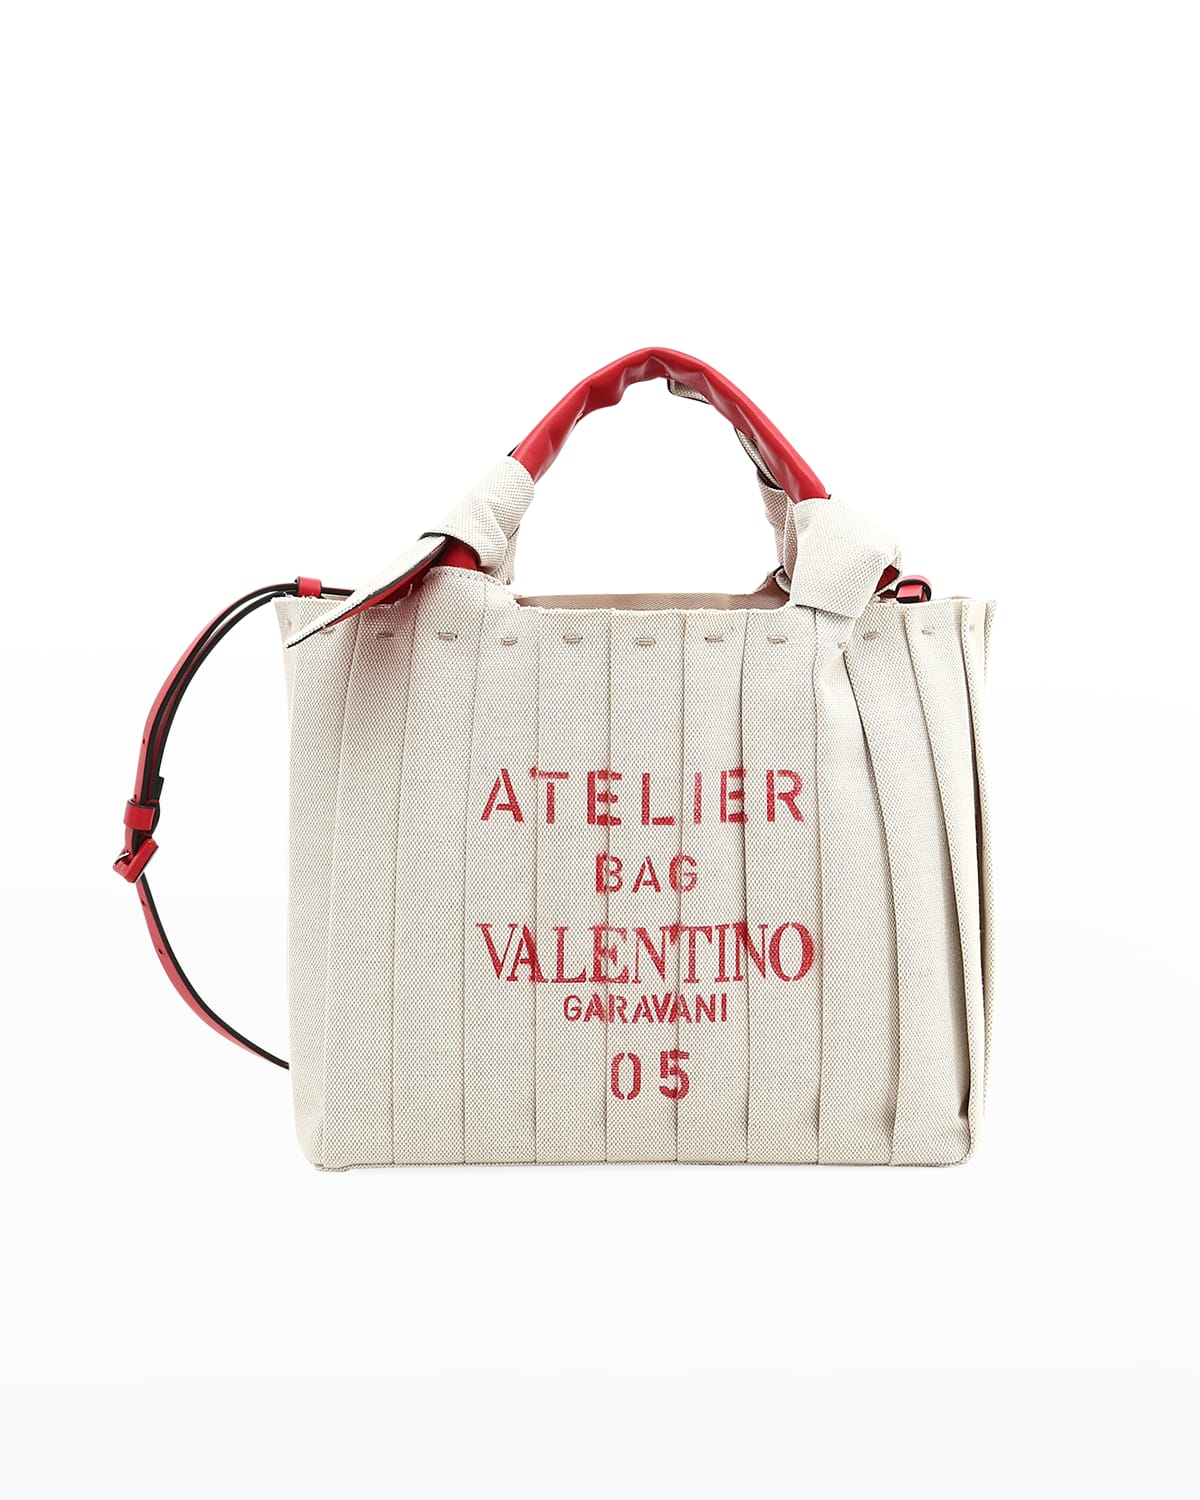 Atelier Plisse' 05 Edition Small Tote Bag